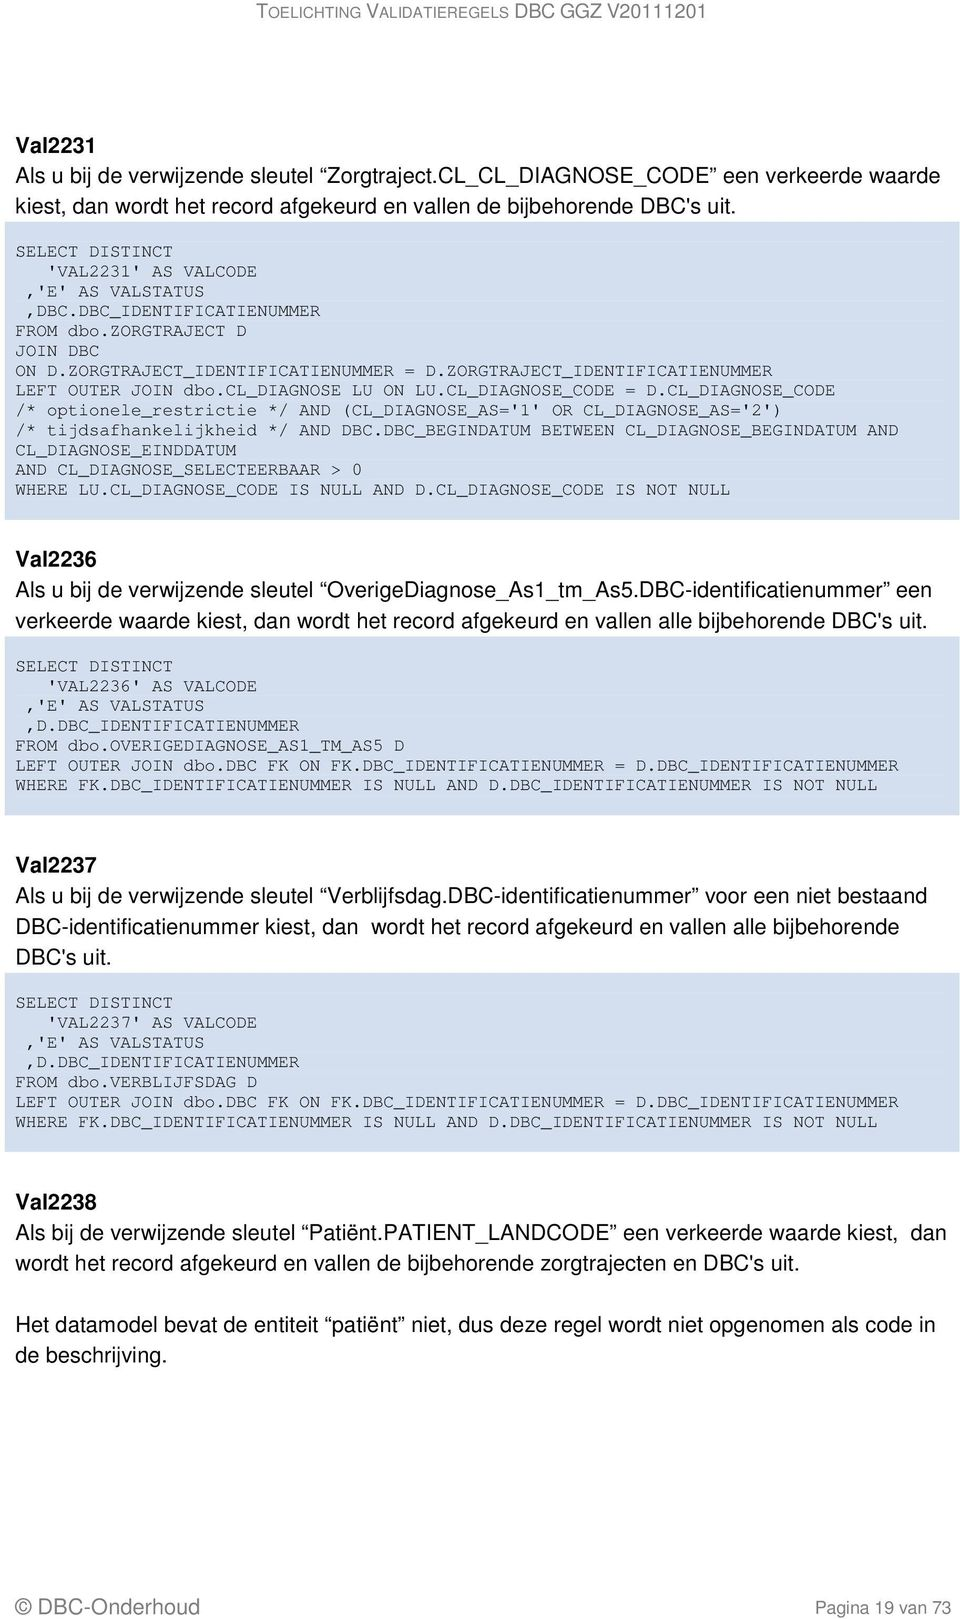 CL_DIAGNOSE_CODE /* optionele_restrictie */ AND CL_DIAGNOSE_AS='1' OR CL_DIAGNOSE_AS='2' /* tijdsafhankelijkheid */ AND DBC.